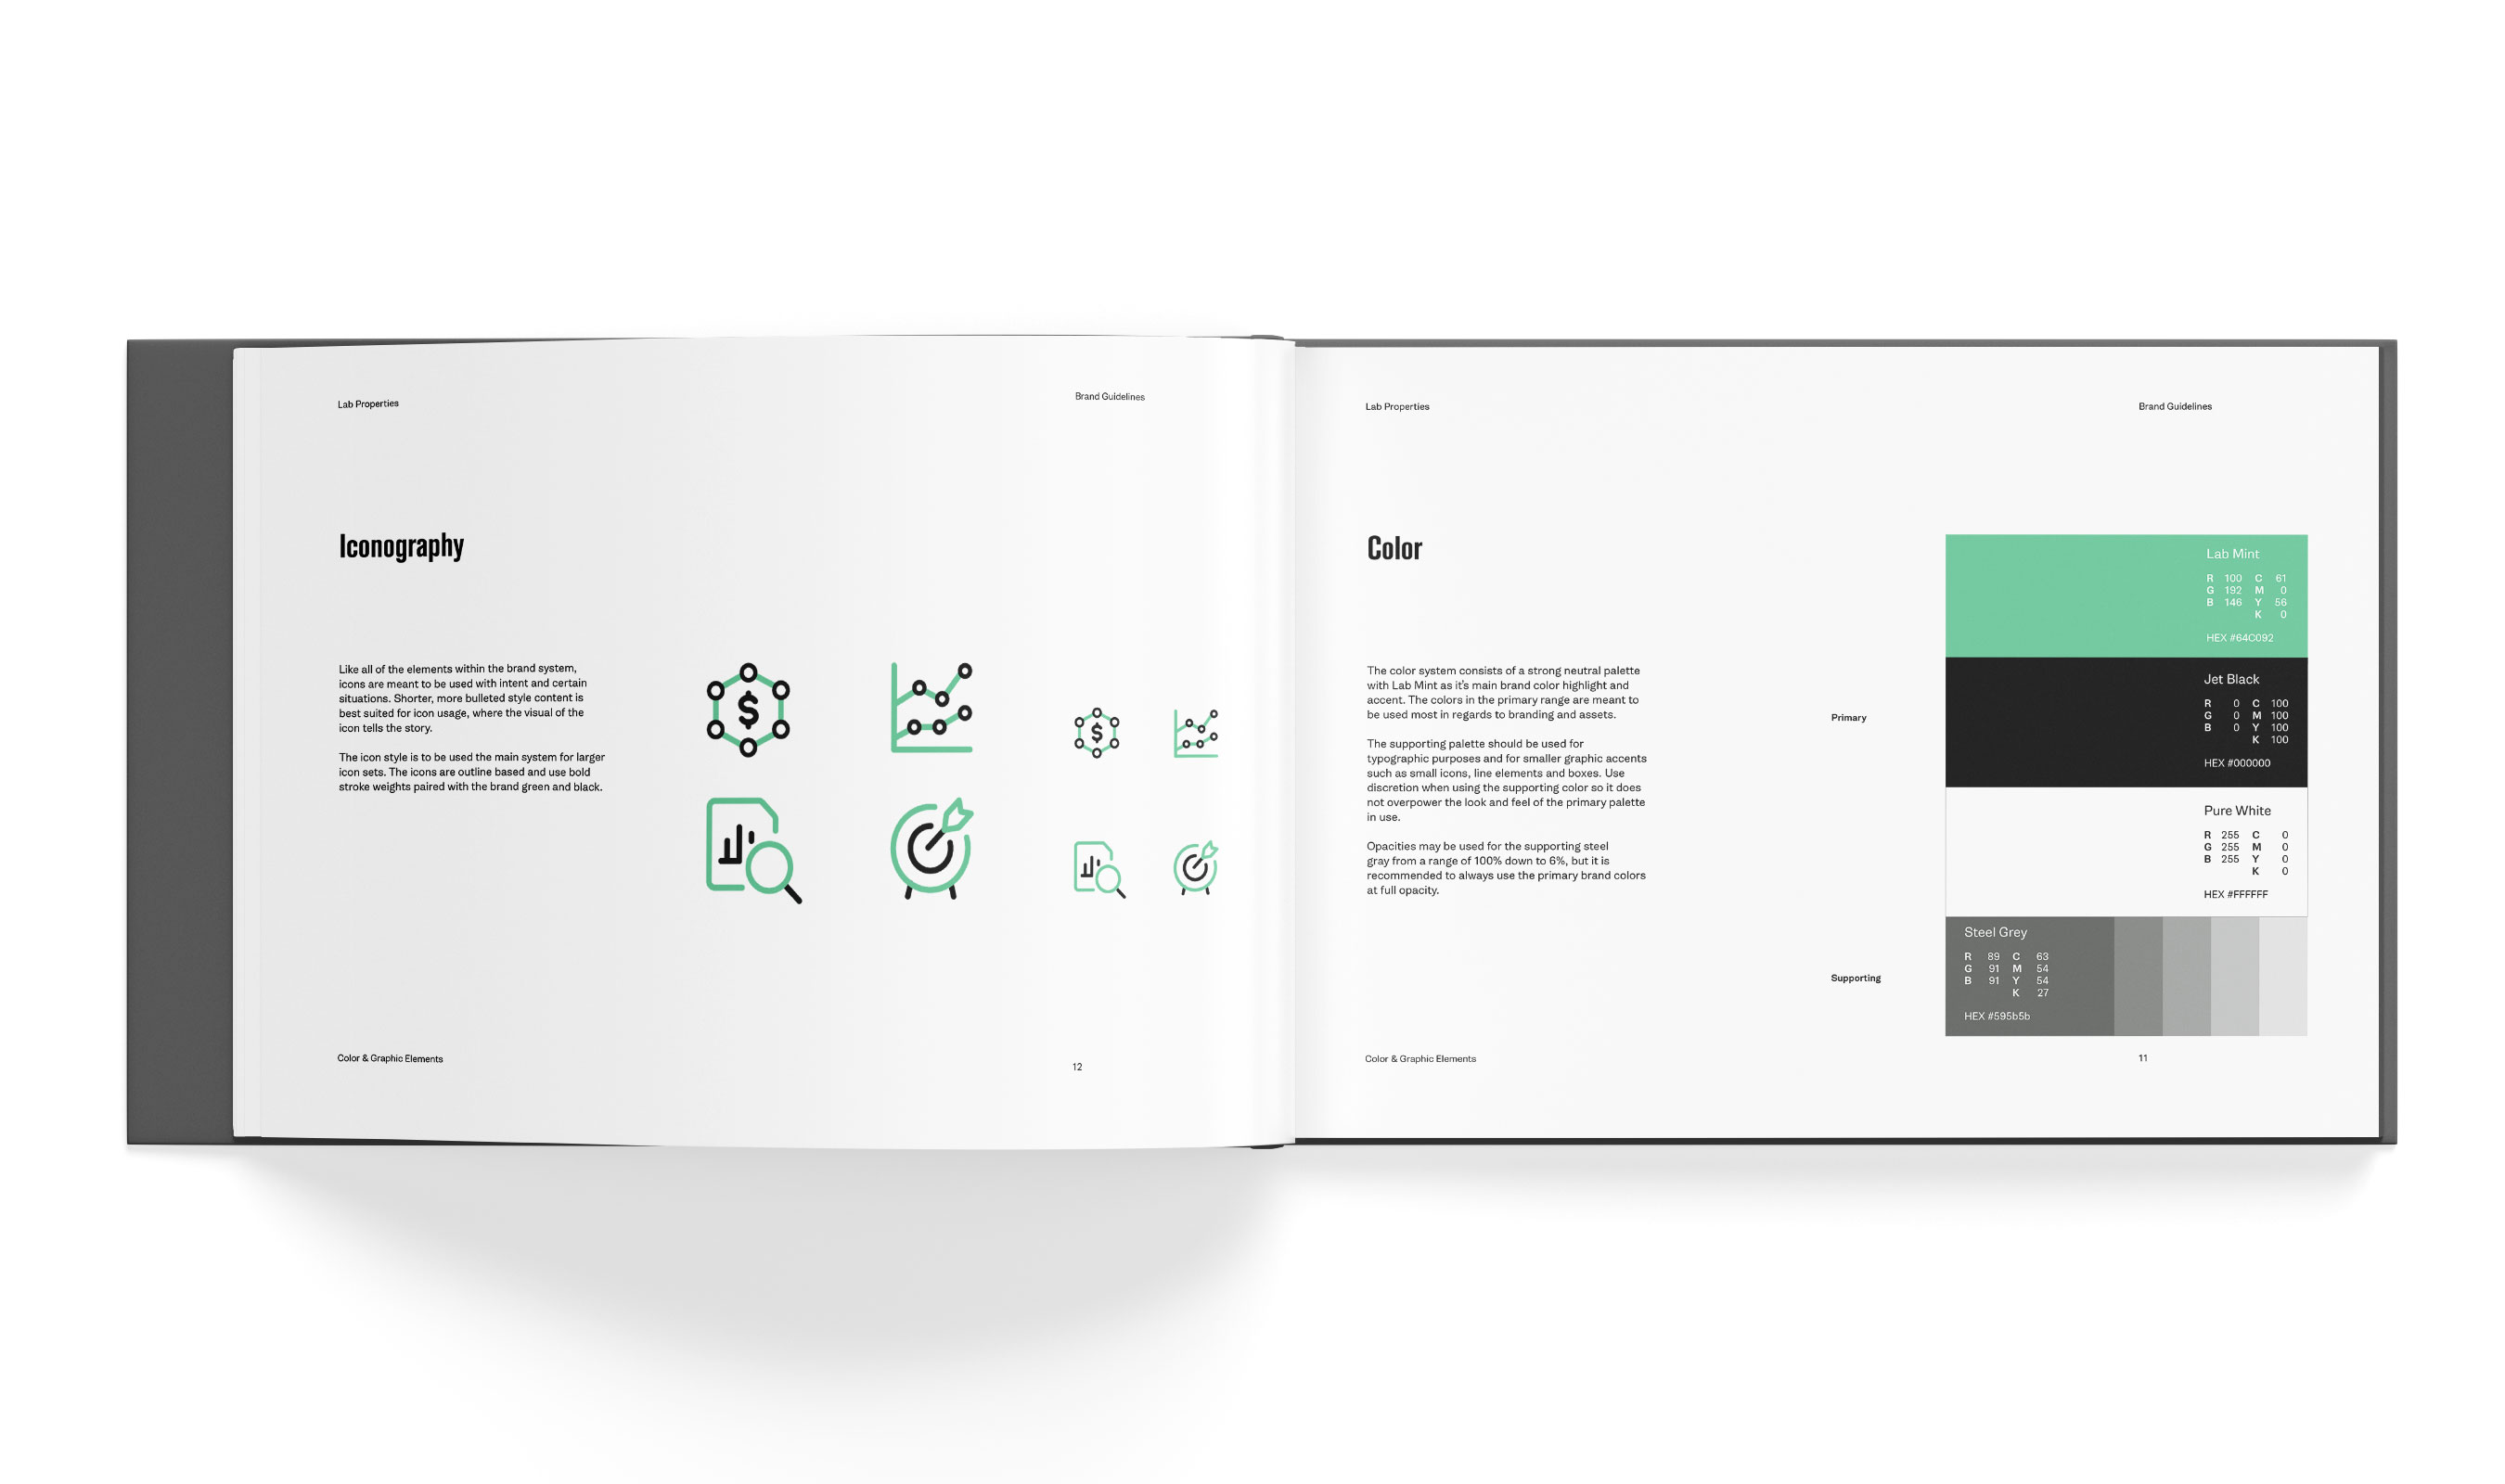 Lab Properties brand guidelines color and iconography section spread